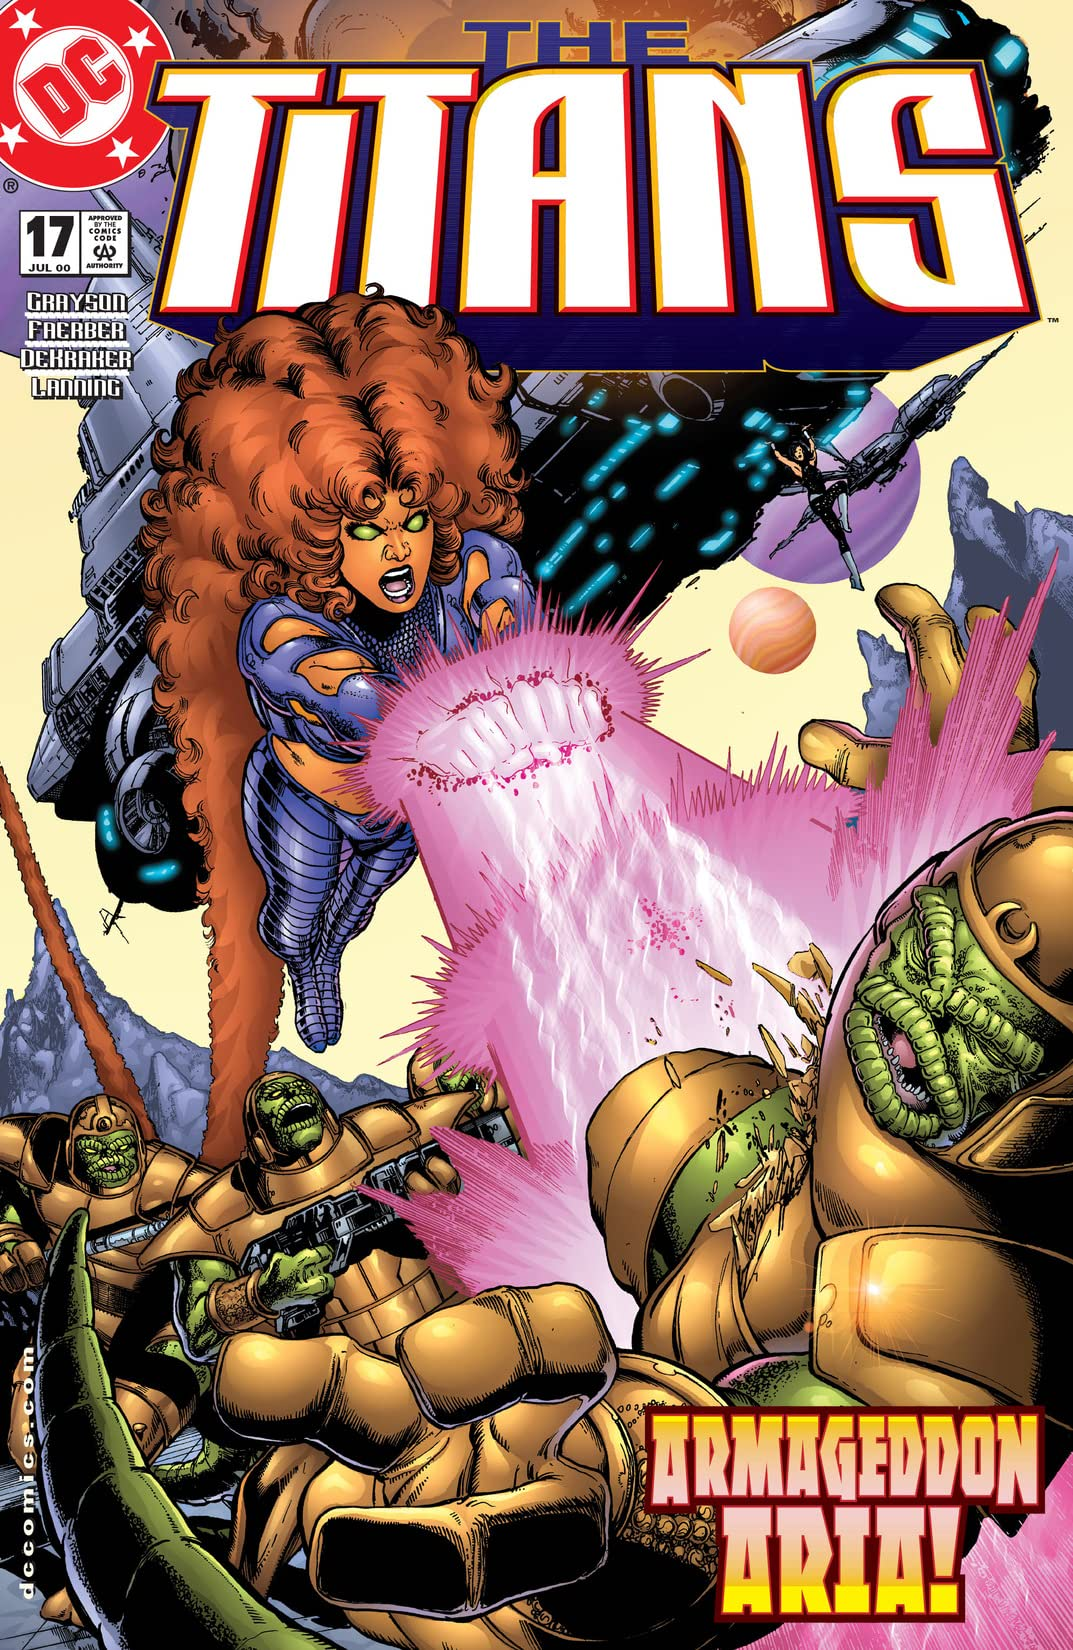 The Titans (1999-2003) #17